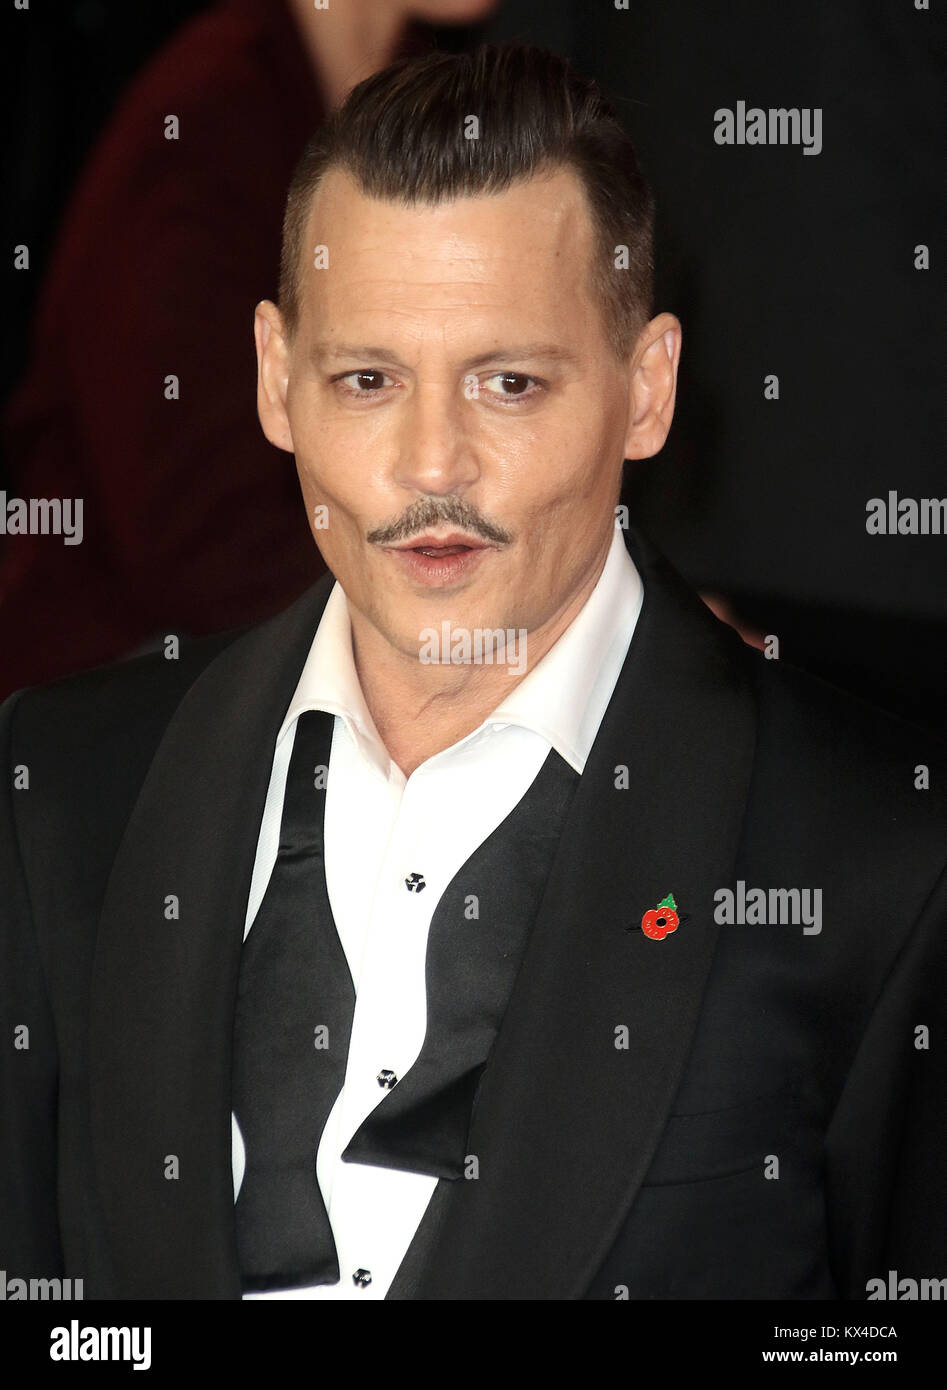 Nov 02, 2017 - Johnny Depp attending 'Murder On The Orient Express' World Premiere, Royal Albert Hall in - Stock Image